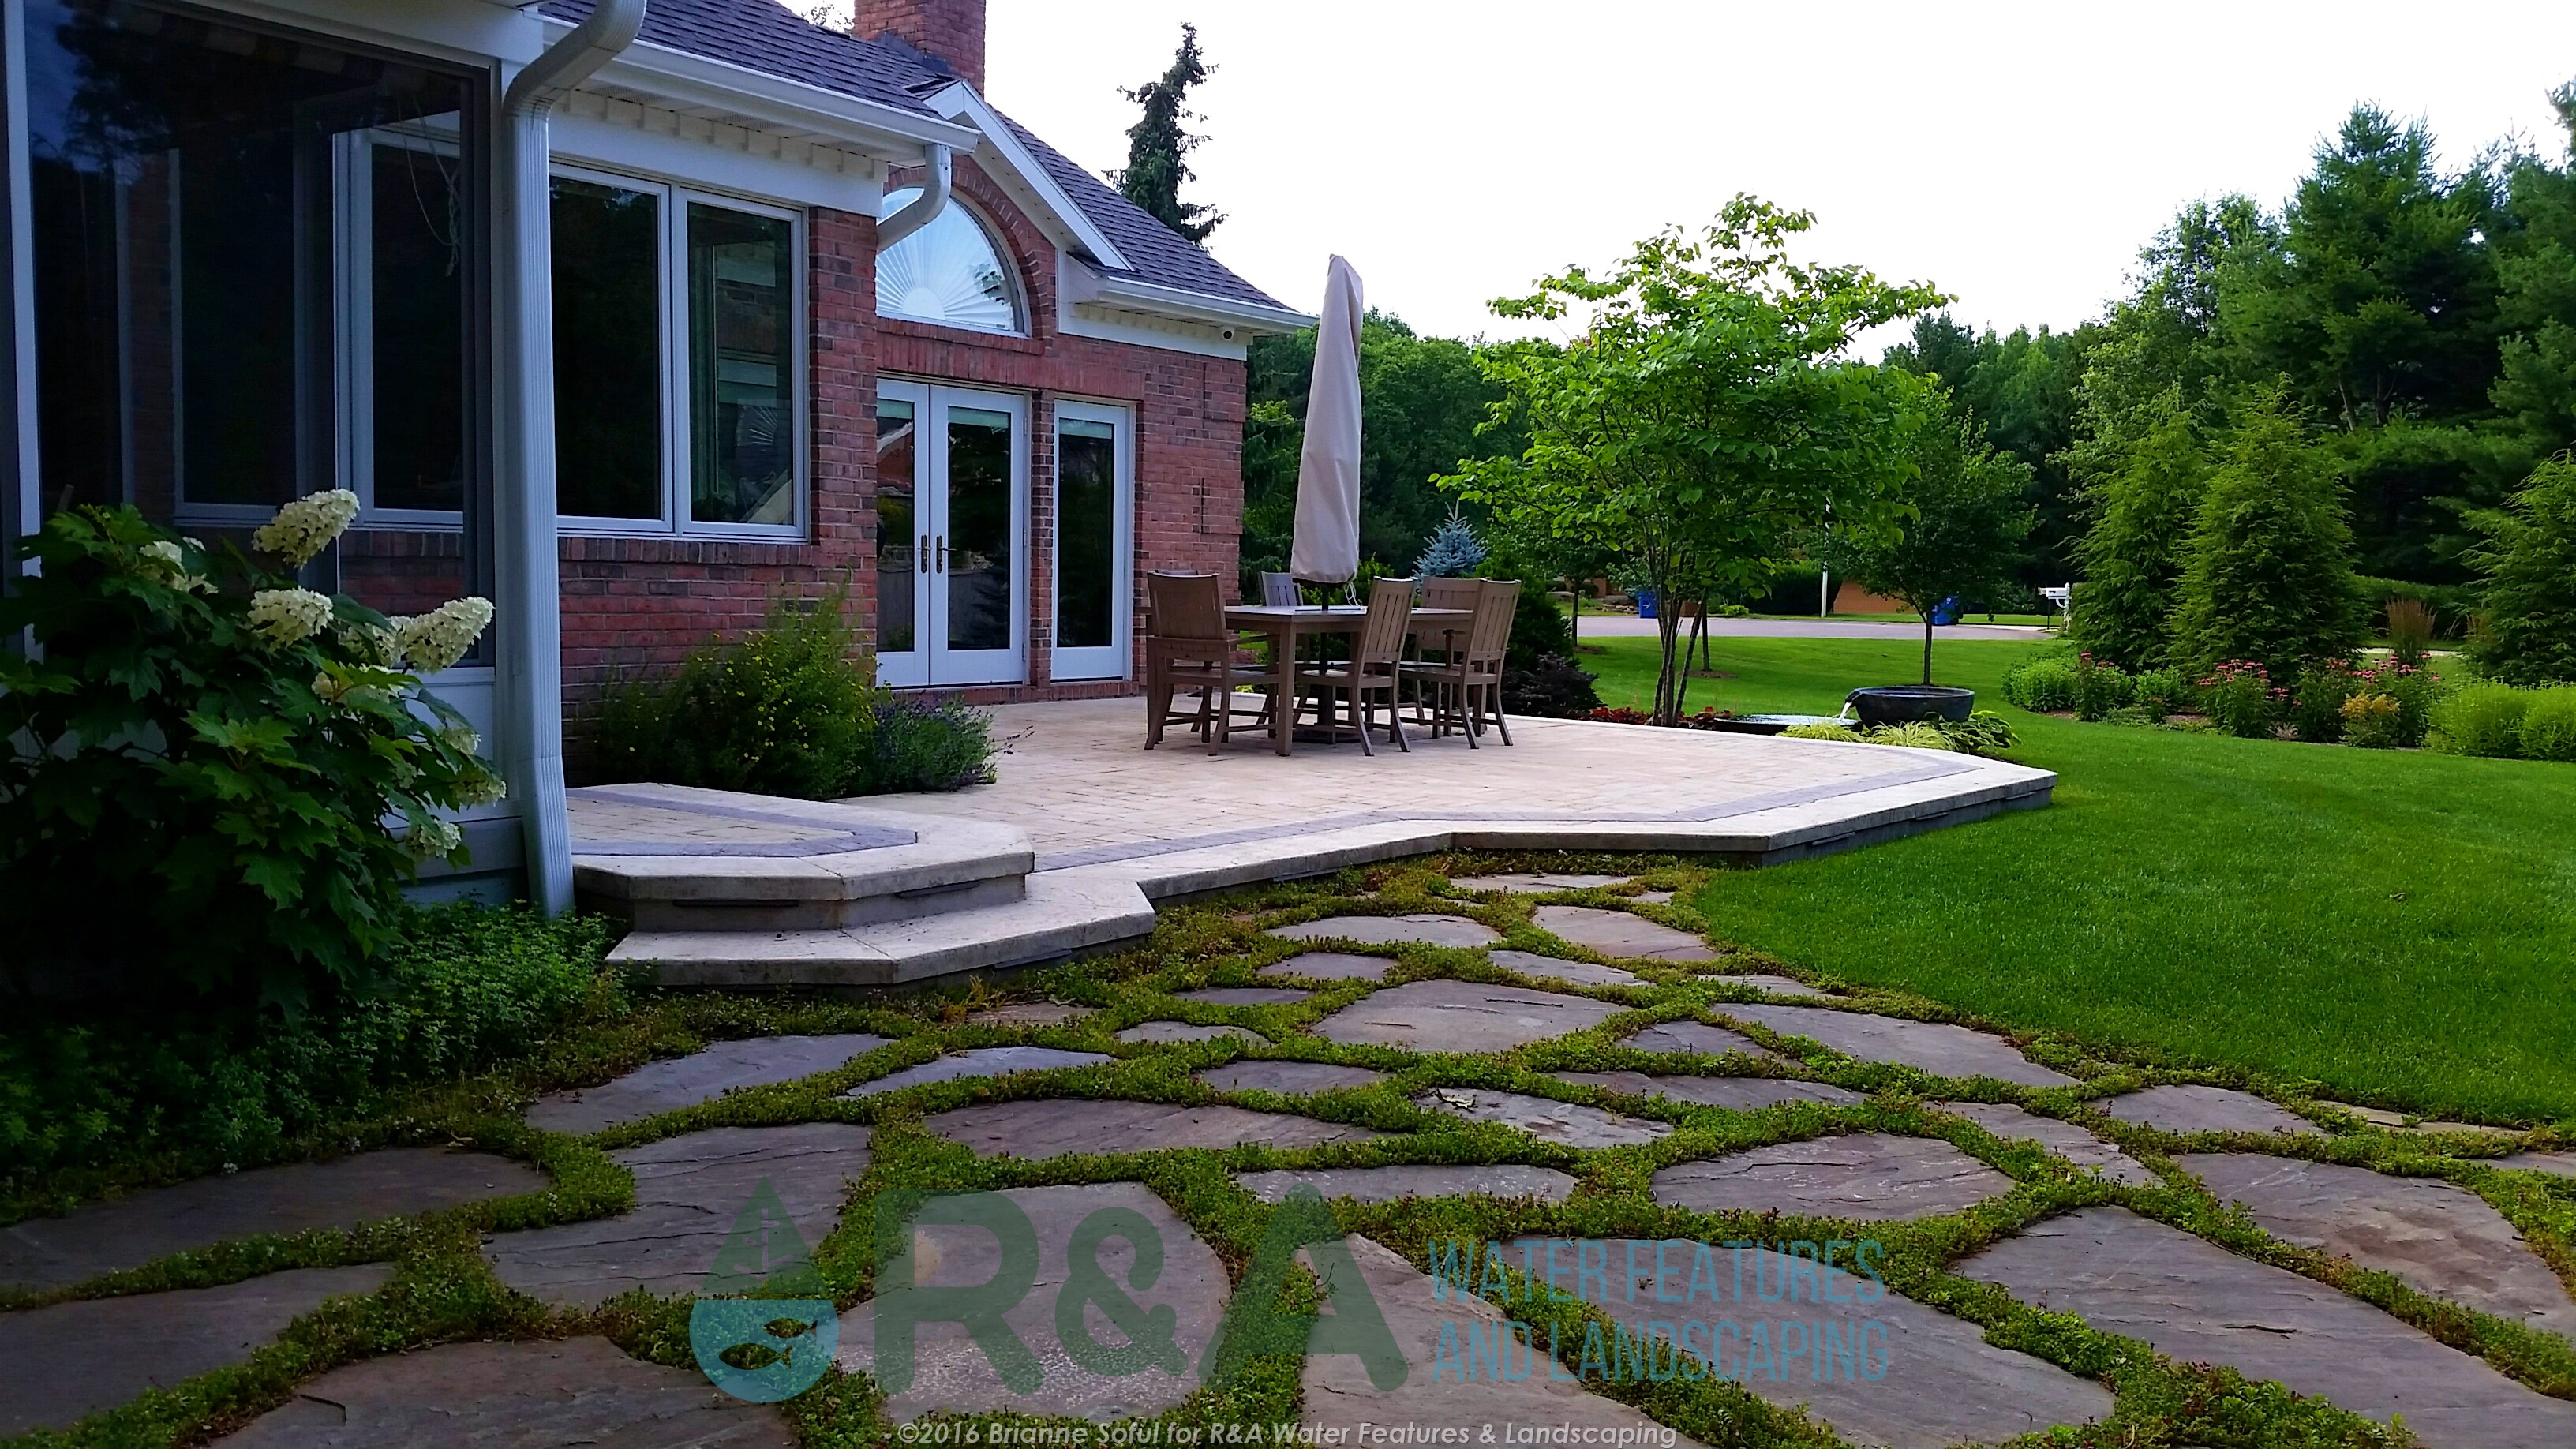 Texas Township Estate Renovation Landscape Water Feature Patio 1